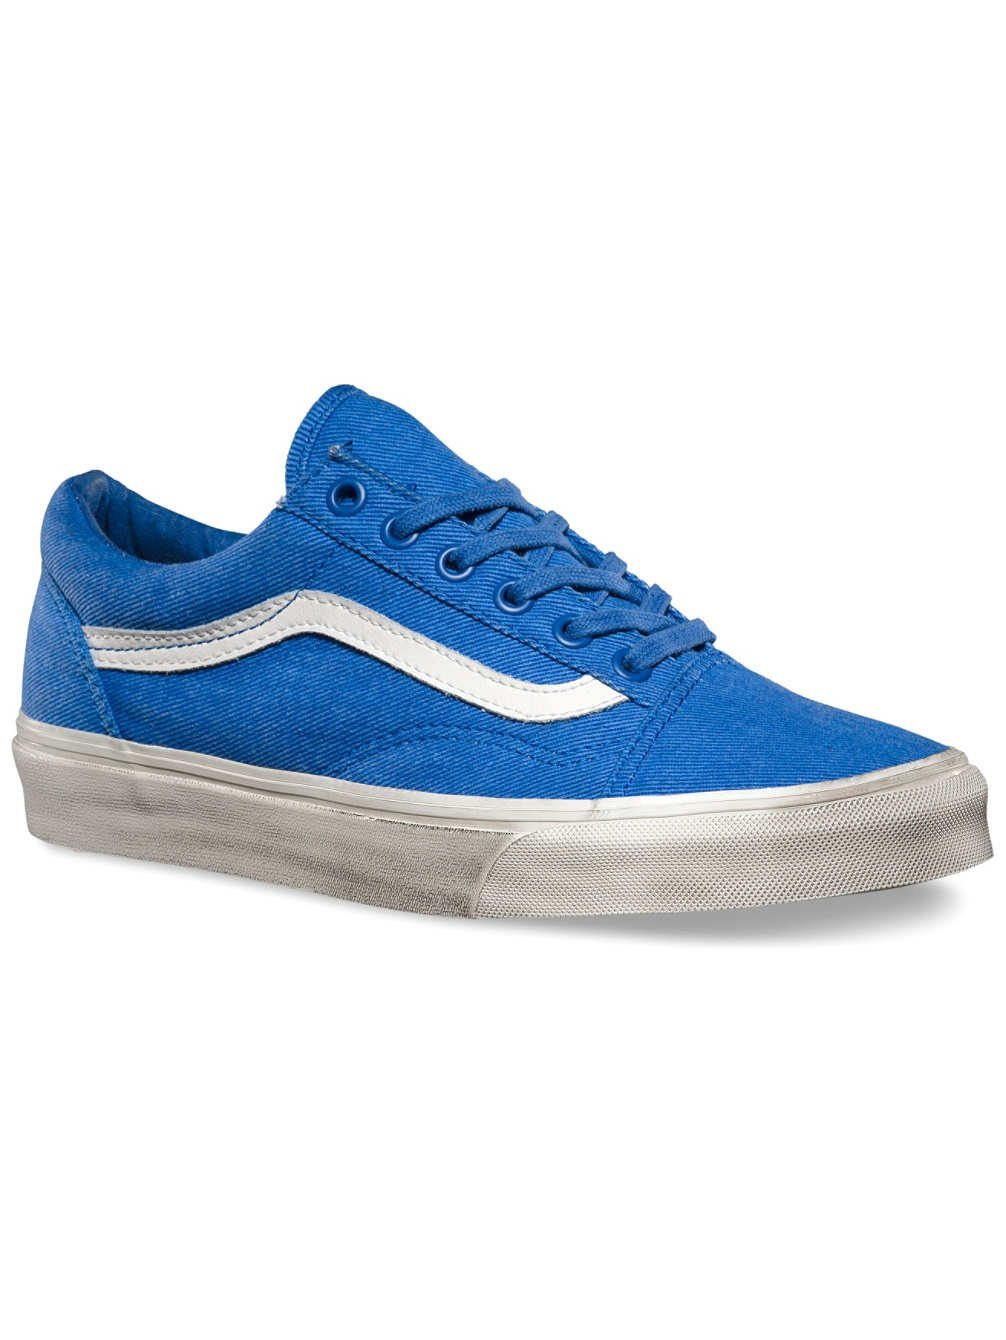 Vans U Old Skool - Zapatillas de Deporte de canvas Unisex 39.5 EU|Blau - (overwashed) nautical blu